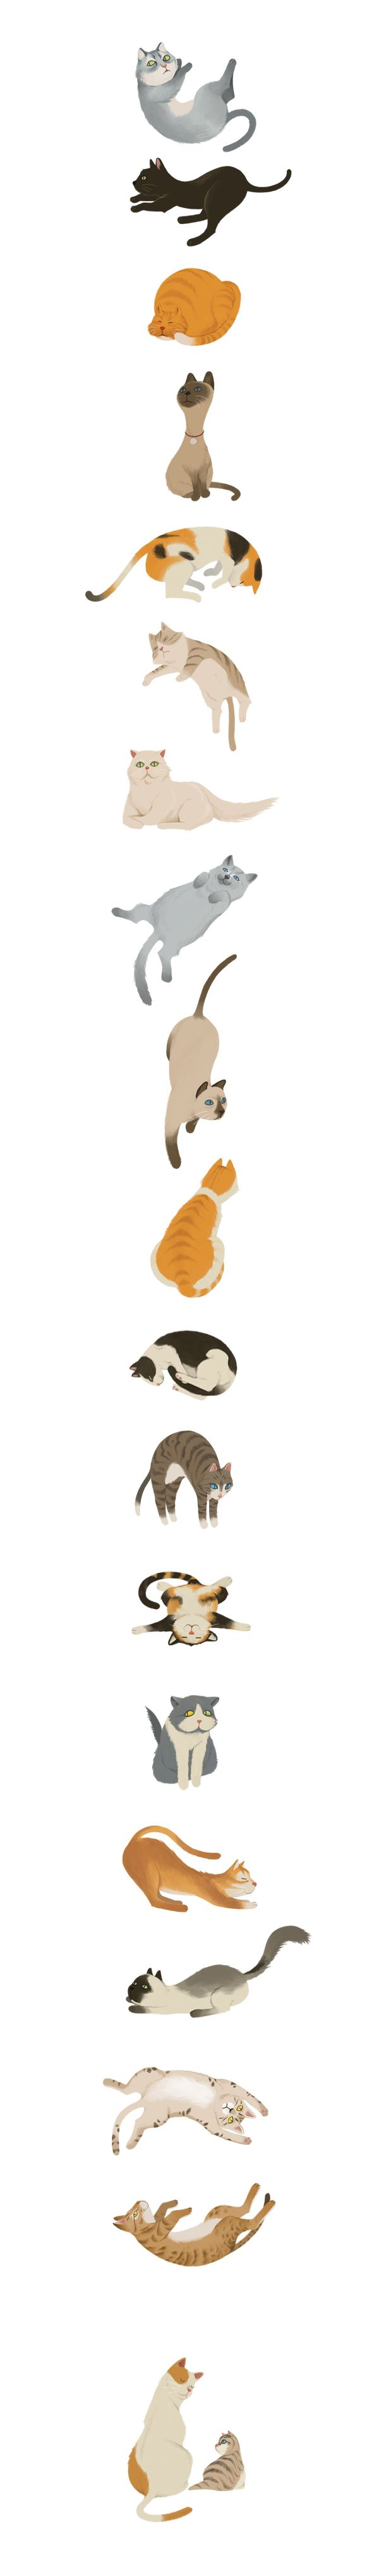 best images about cute on pinterest cats in china and baby skunks